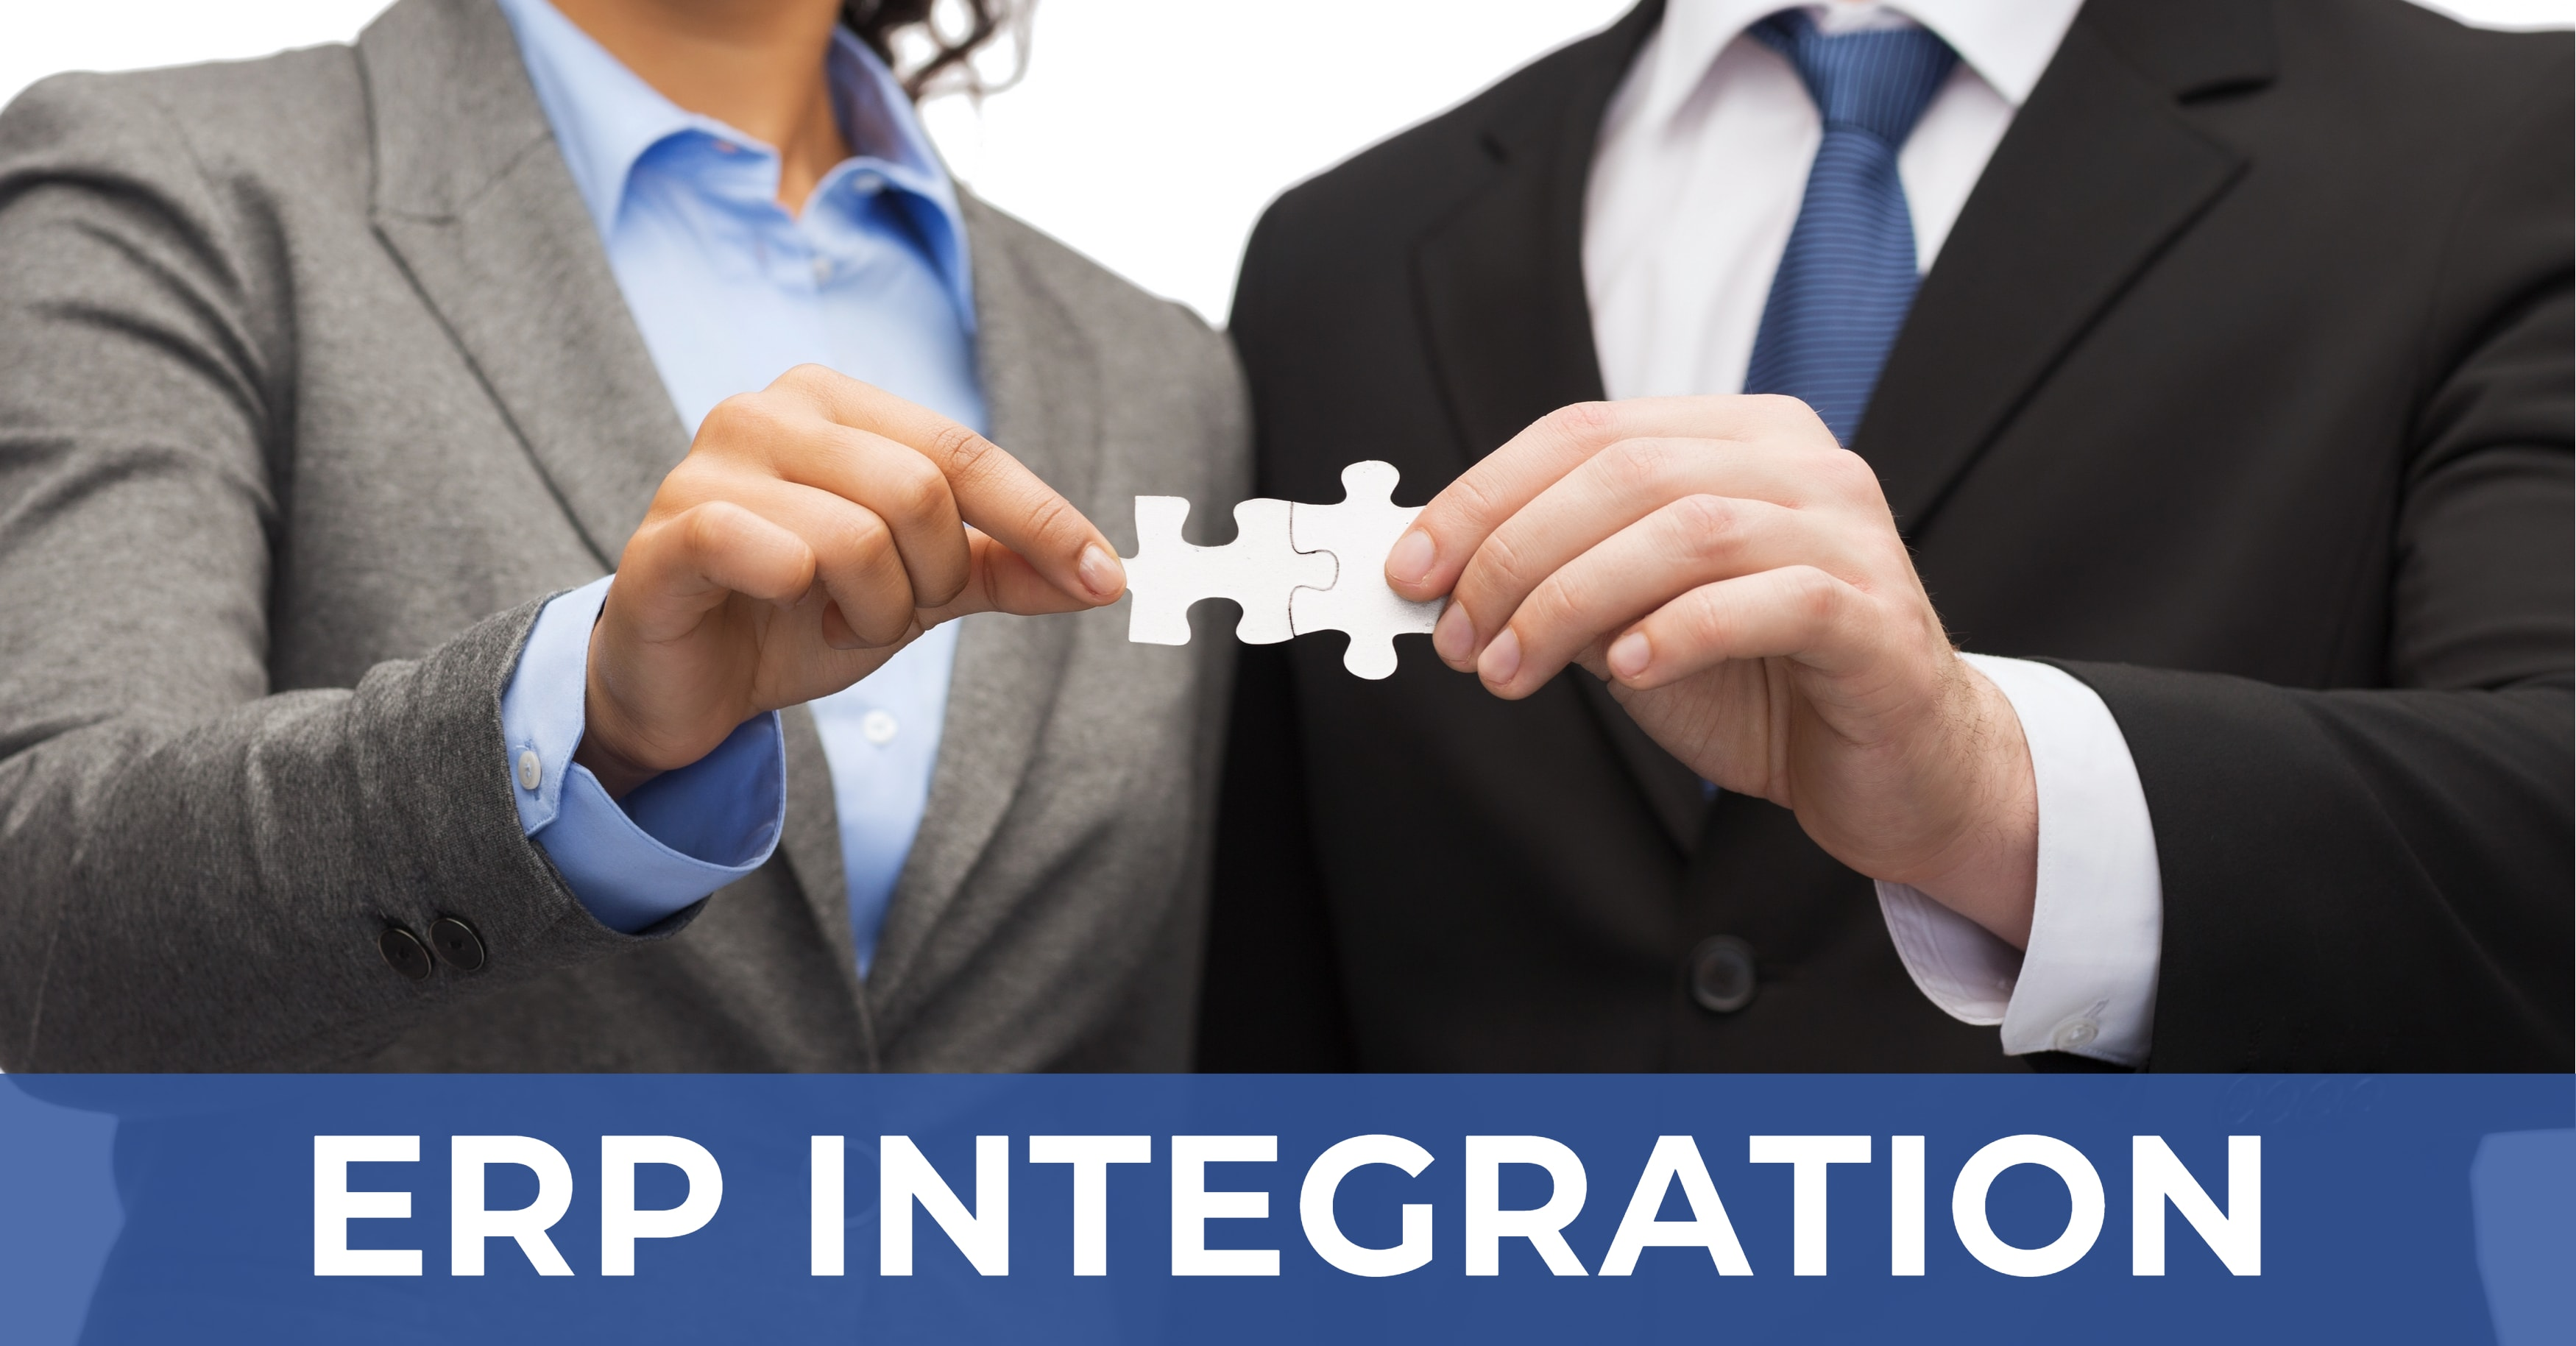 Epicor Insights 2019, Part 3: ERP Integration